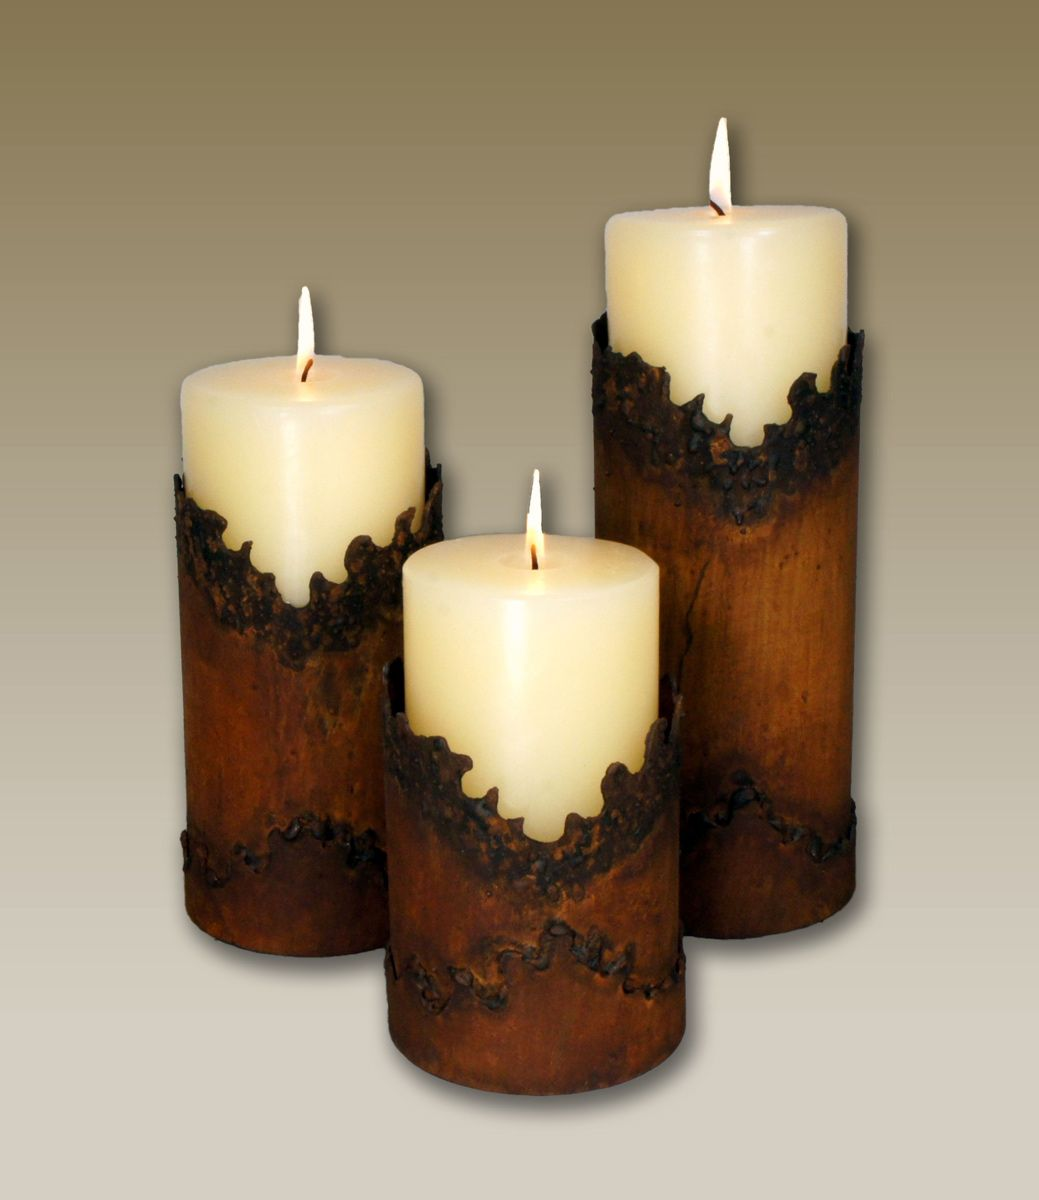 Jagged Edge Southwestern Metal Candle Holders - Set of 3